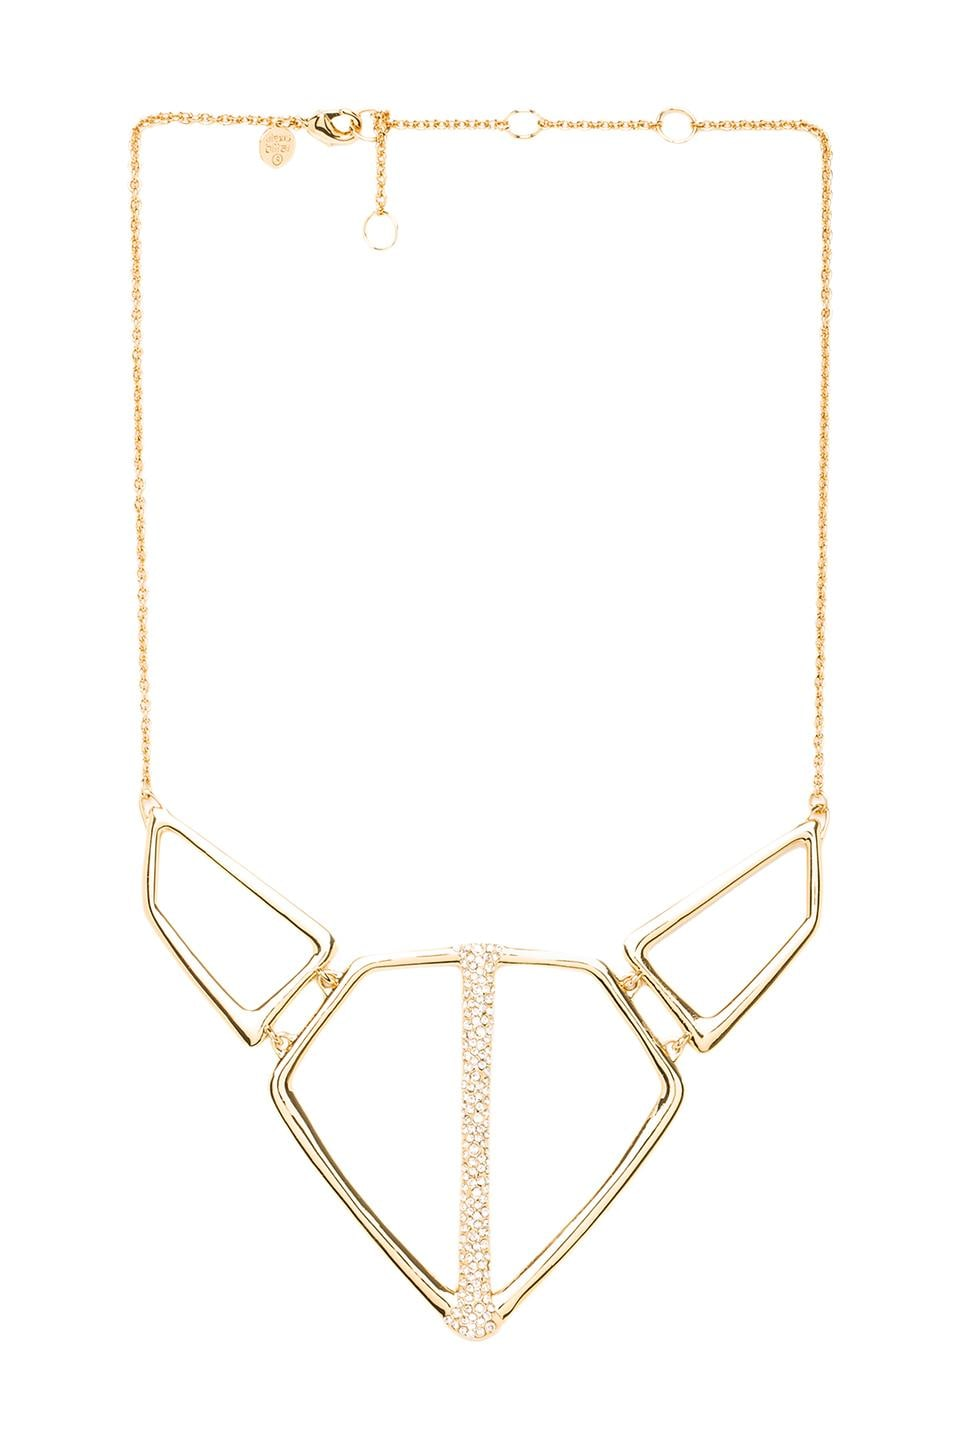 Alexis Bittar Open Link Bar Necklace in Gold